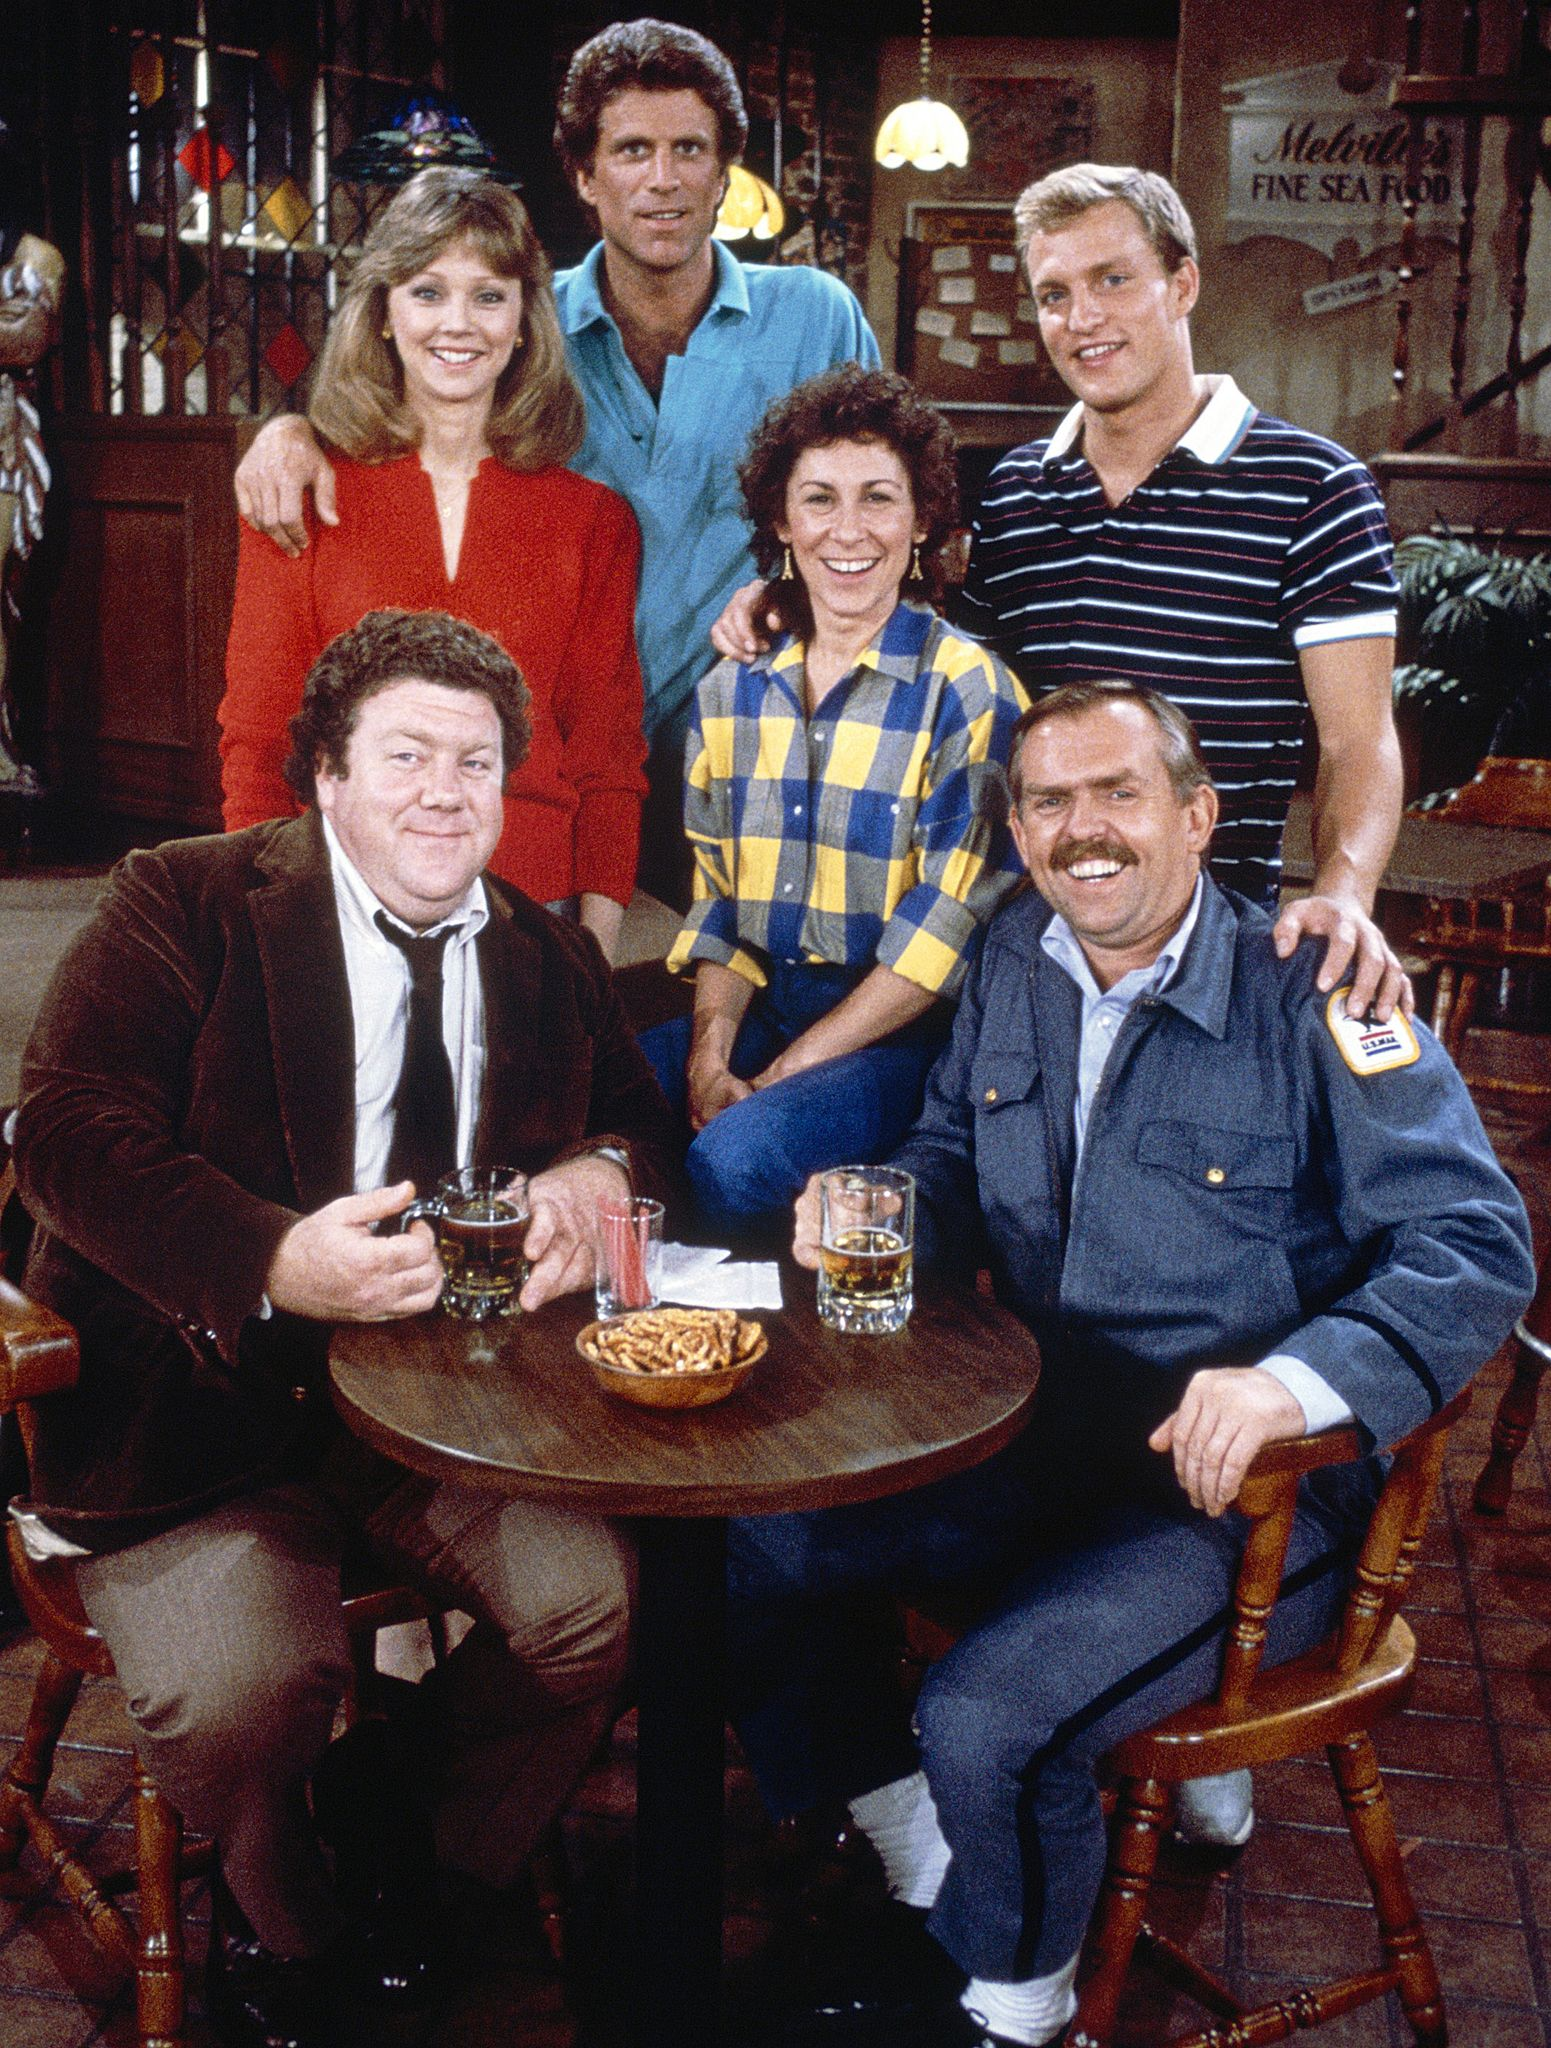 cheers: this show i also use to watch for a while, but just like